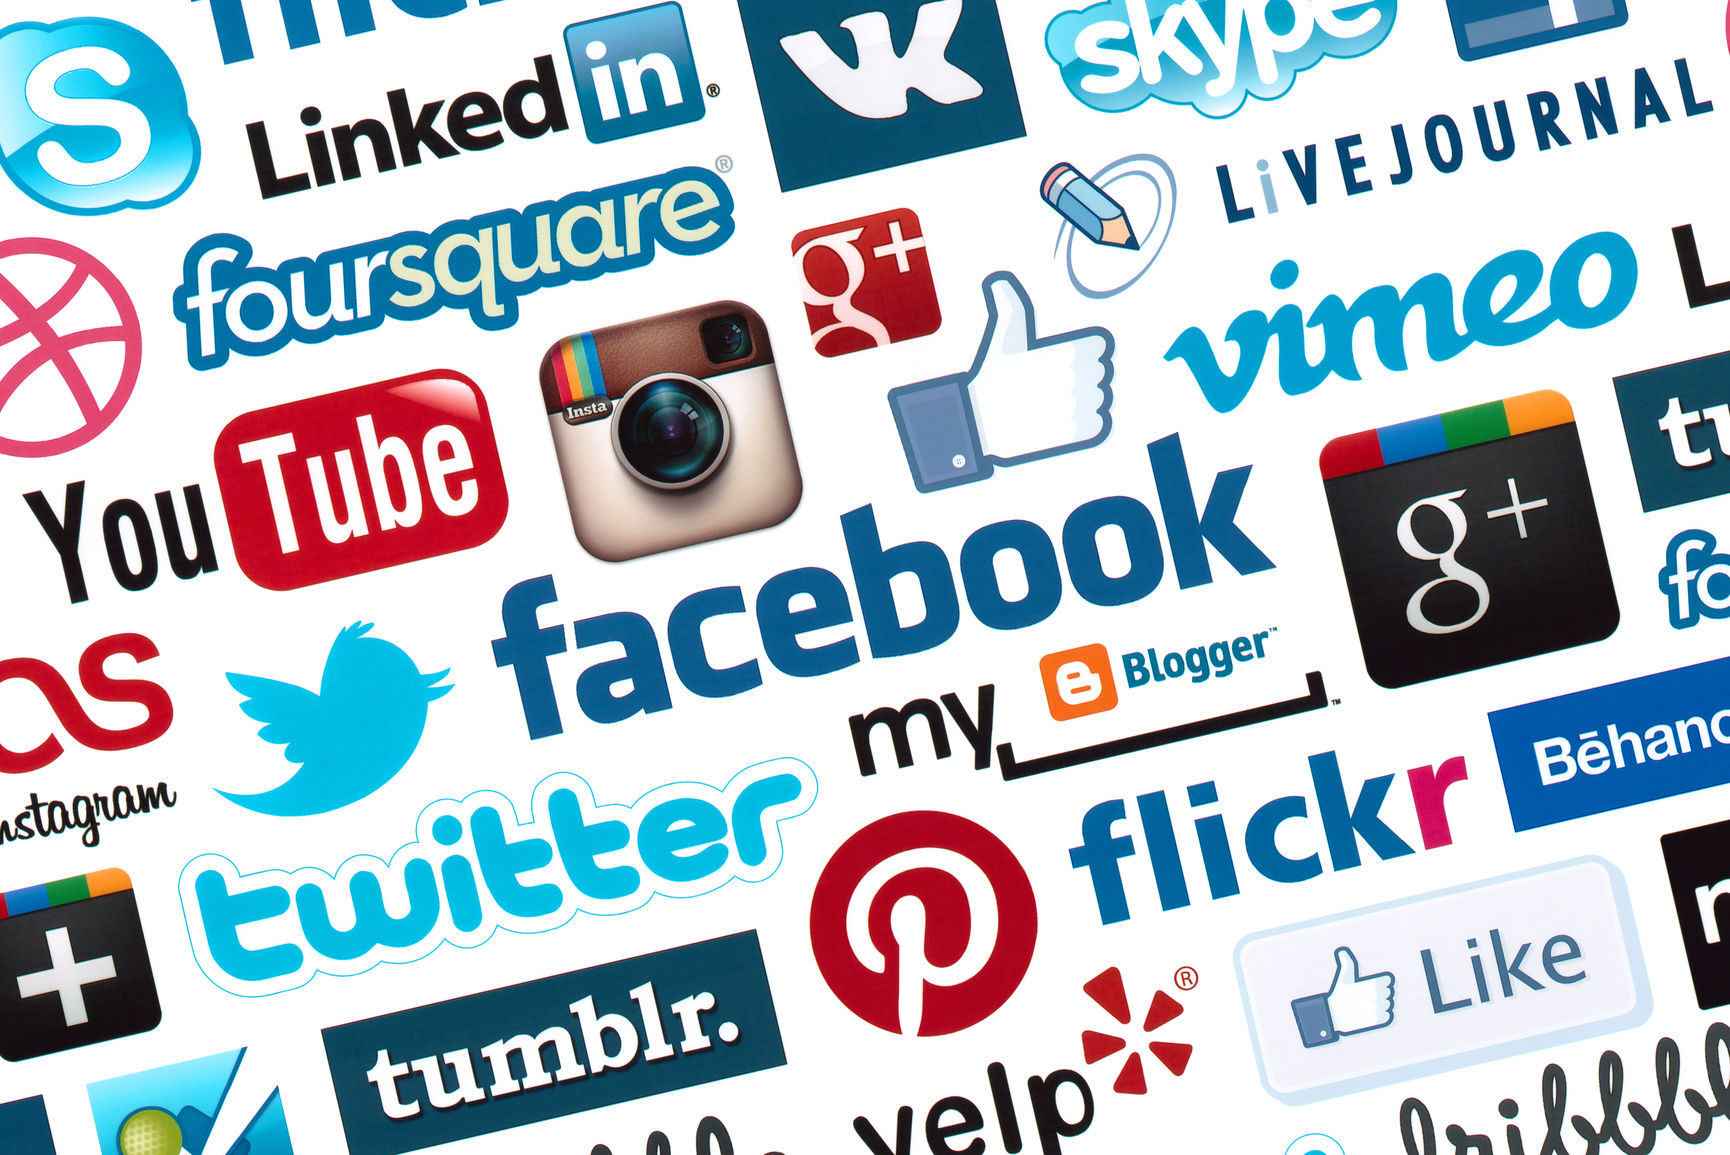 Tips on How to Find a Job Through Social Media